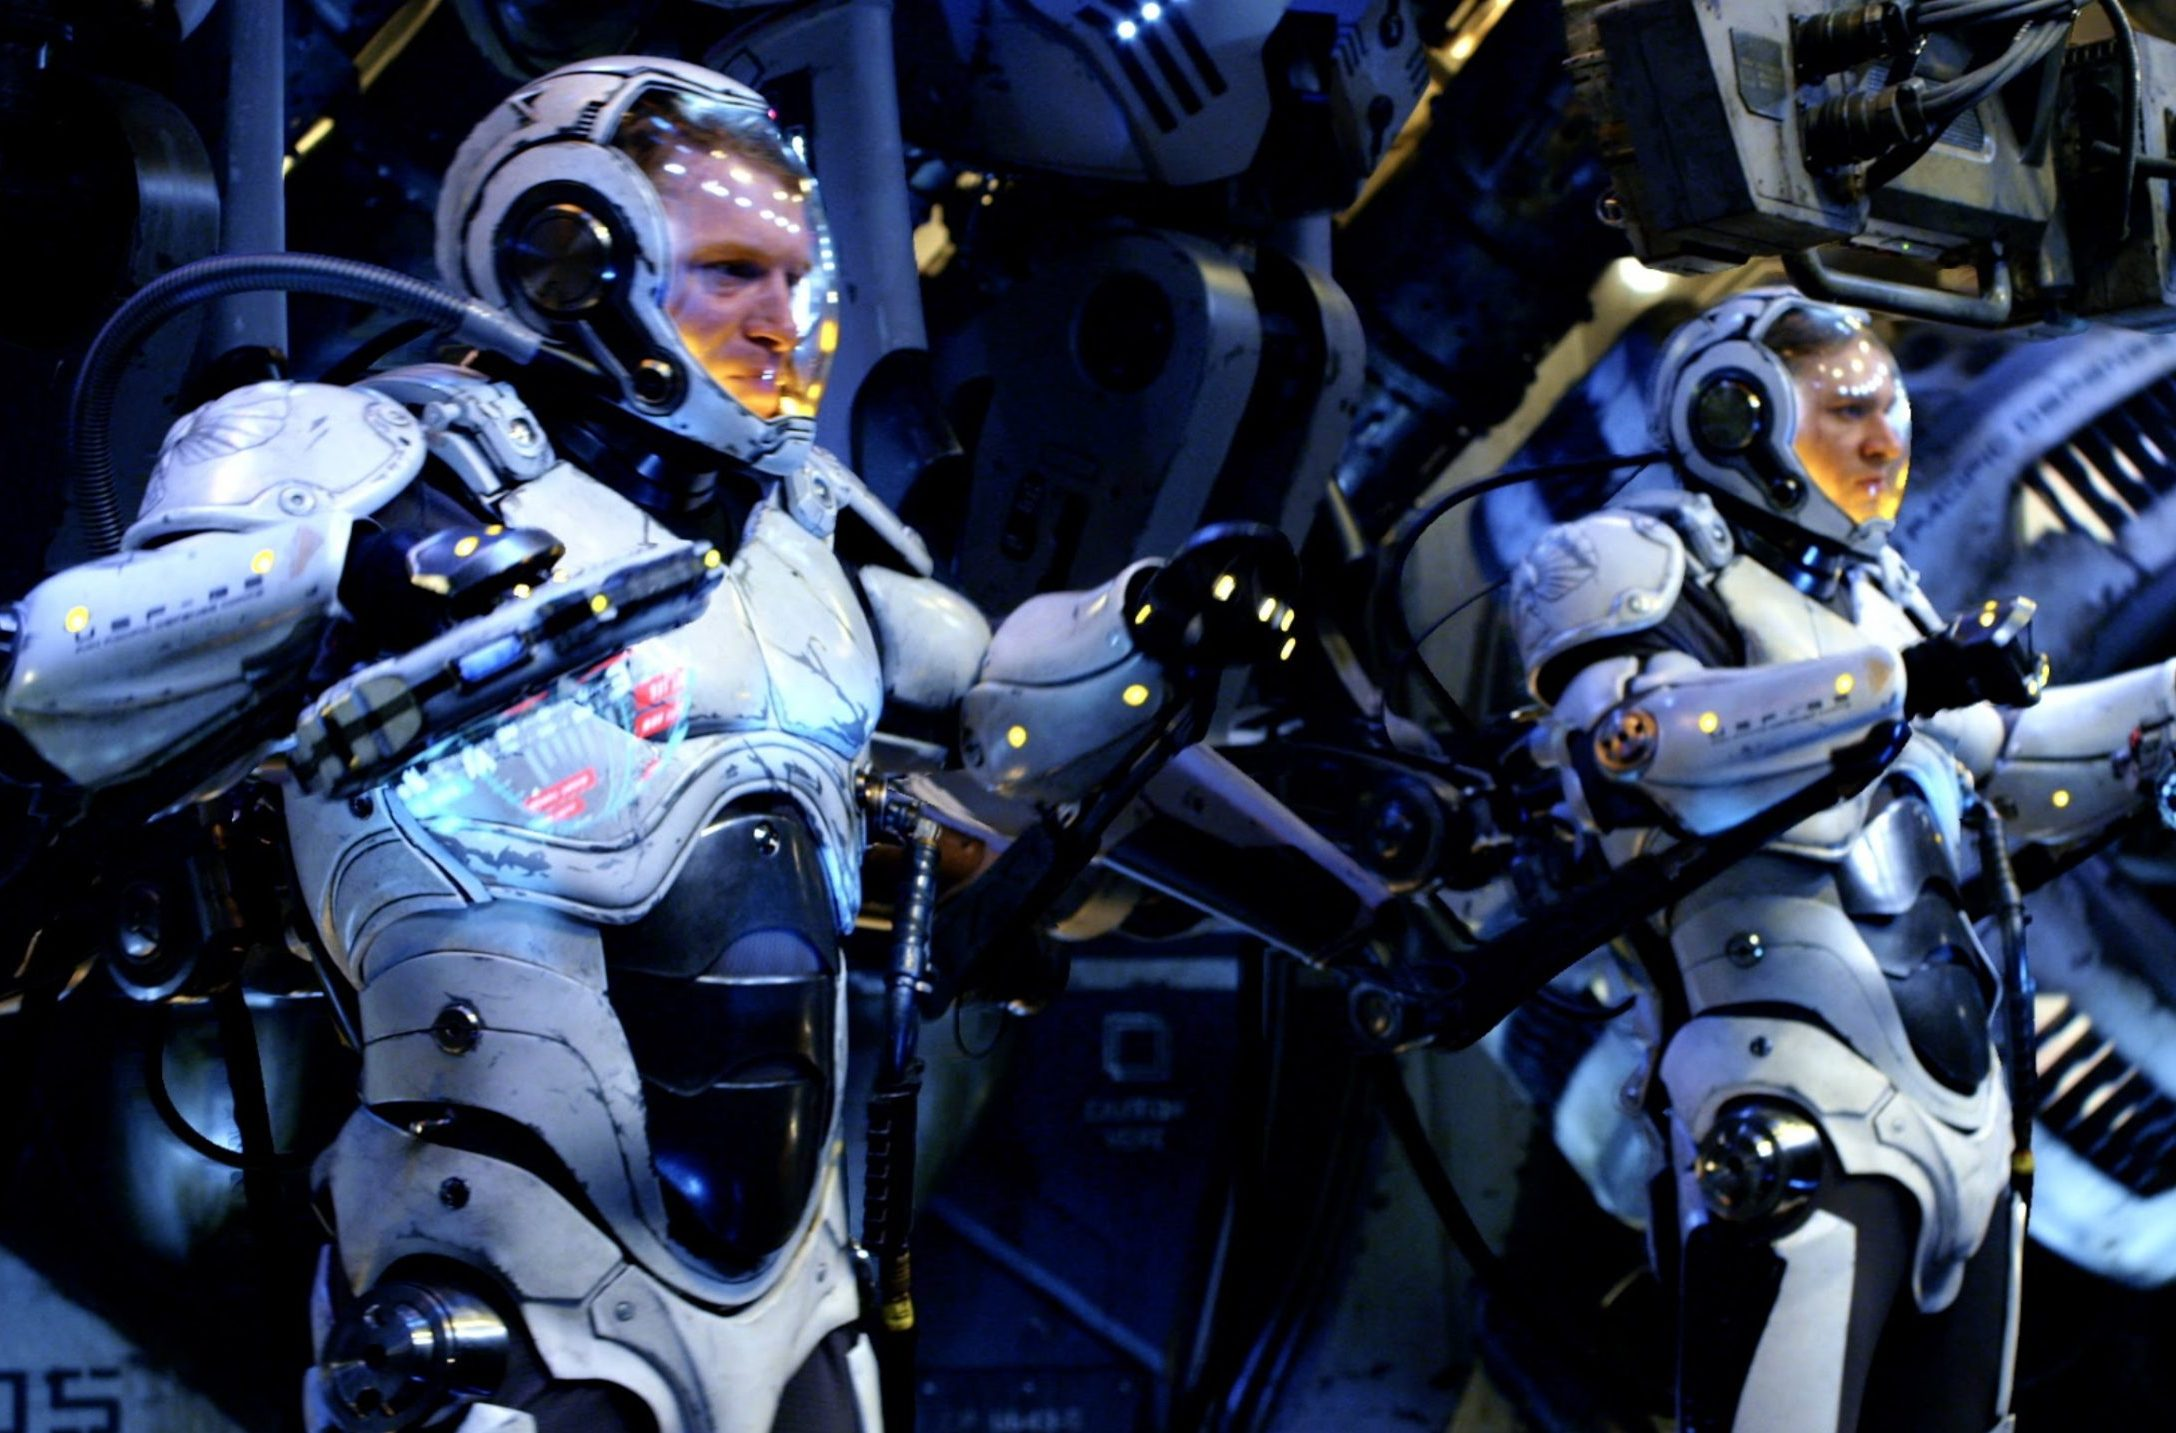 pacific rim jaeger pilot a simul scaled e1624873156740 The Best (And Worst) Movie Robots